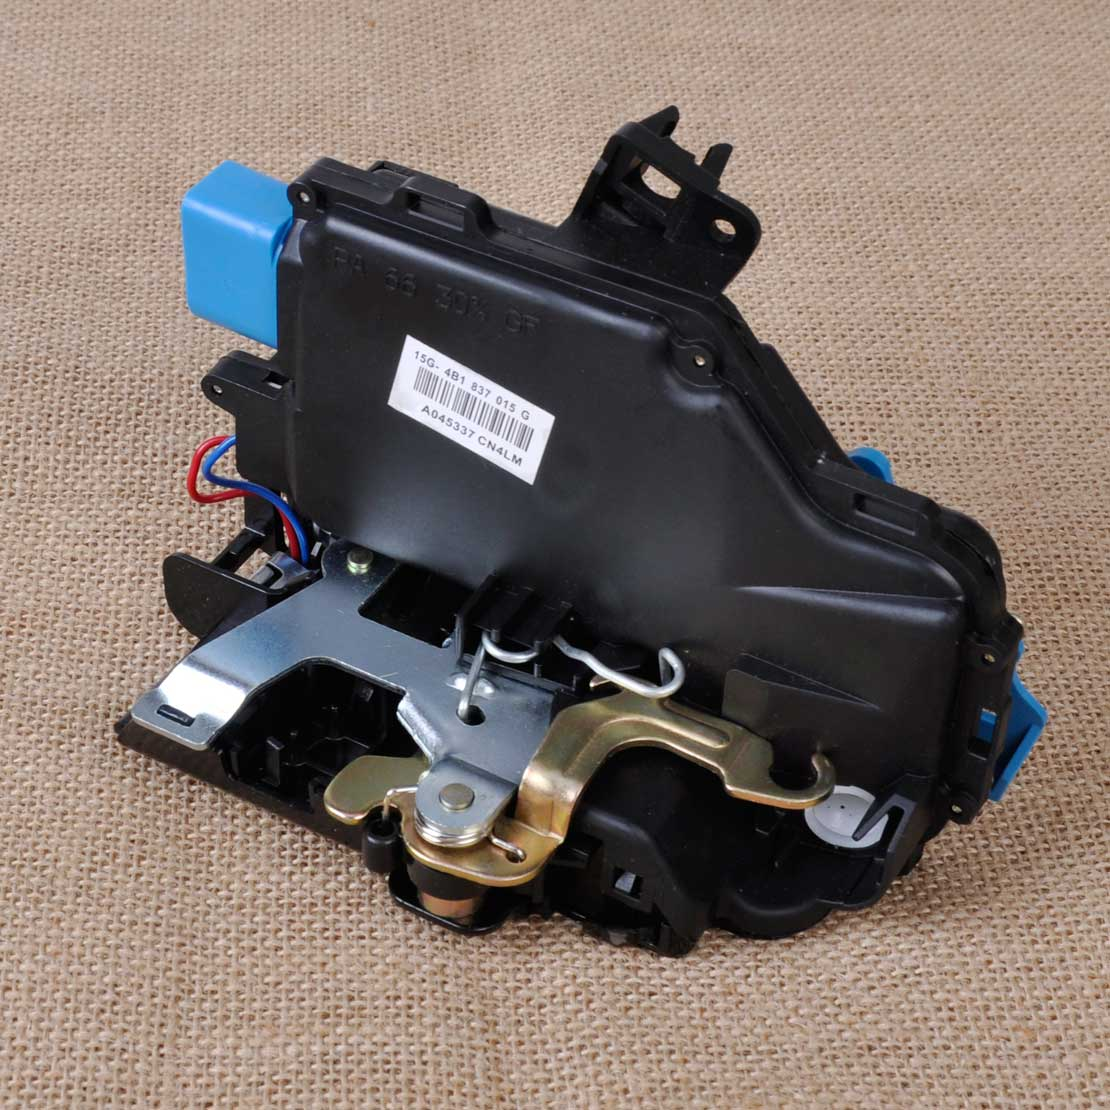 3D1837015 1pc New Black Front Left Driver Door Lock Latch Actuator for VW Golf GTI MK5 Touareg Seat Porsche Cayenne  1TD837015A<br><br>Aliexpress